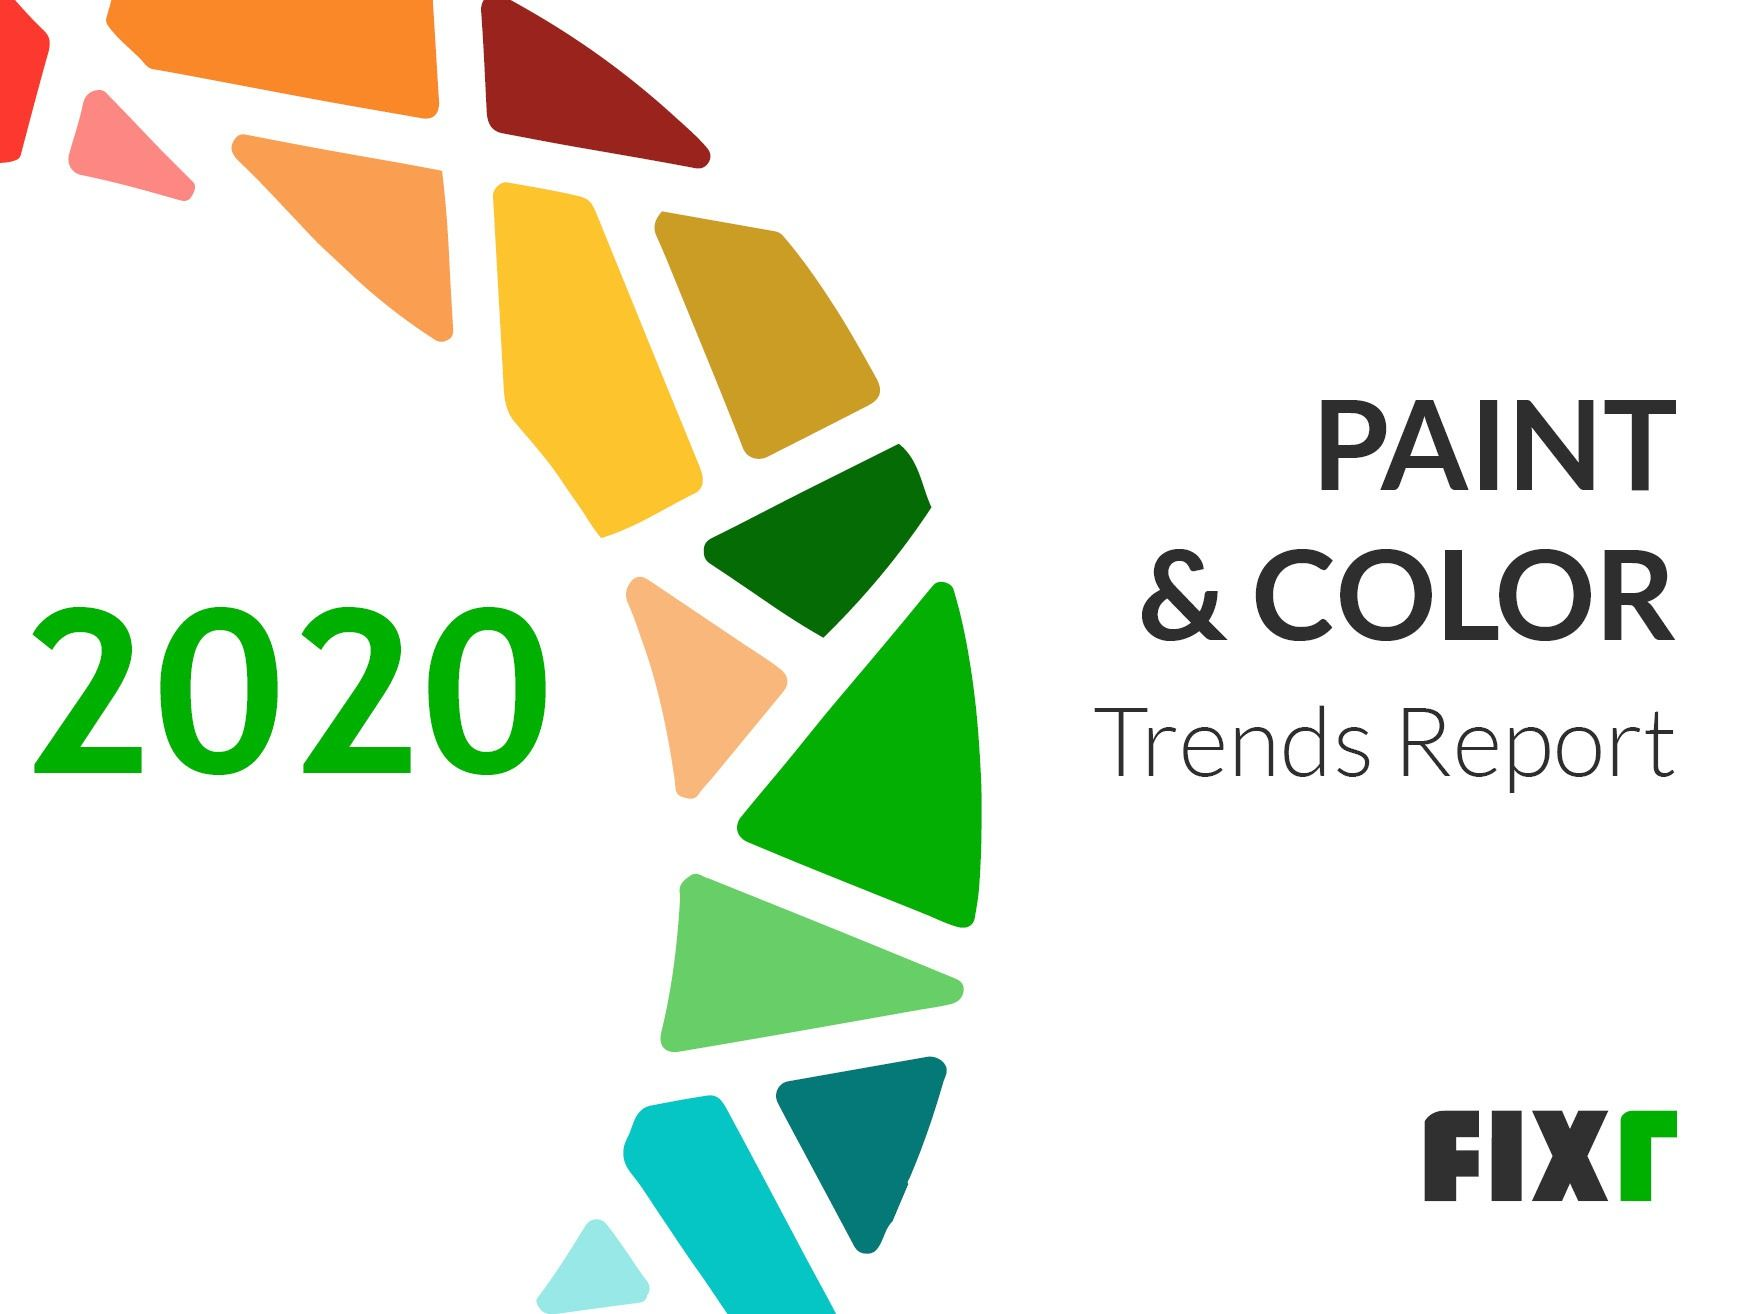 Paint and Color Trends in 2020